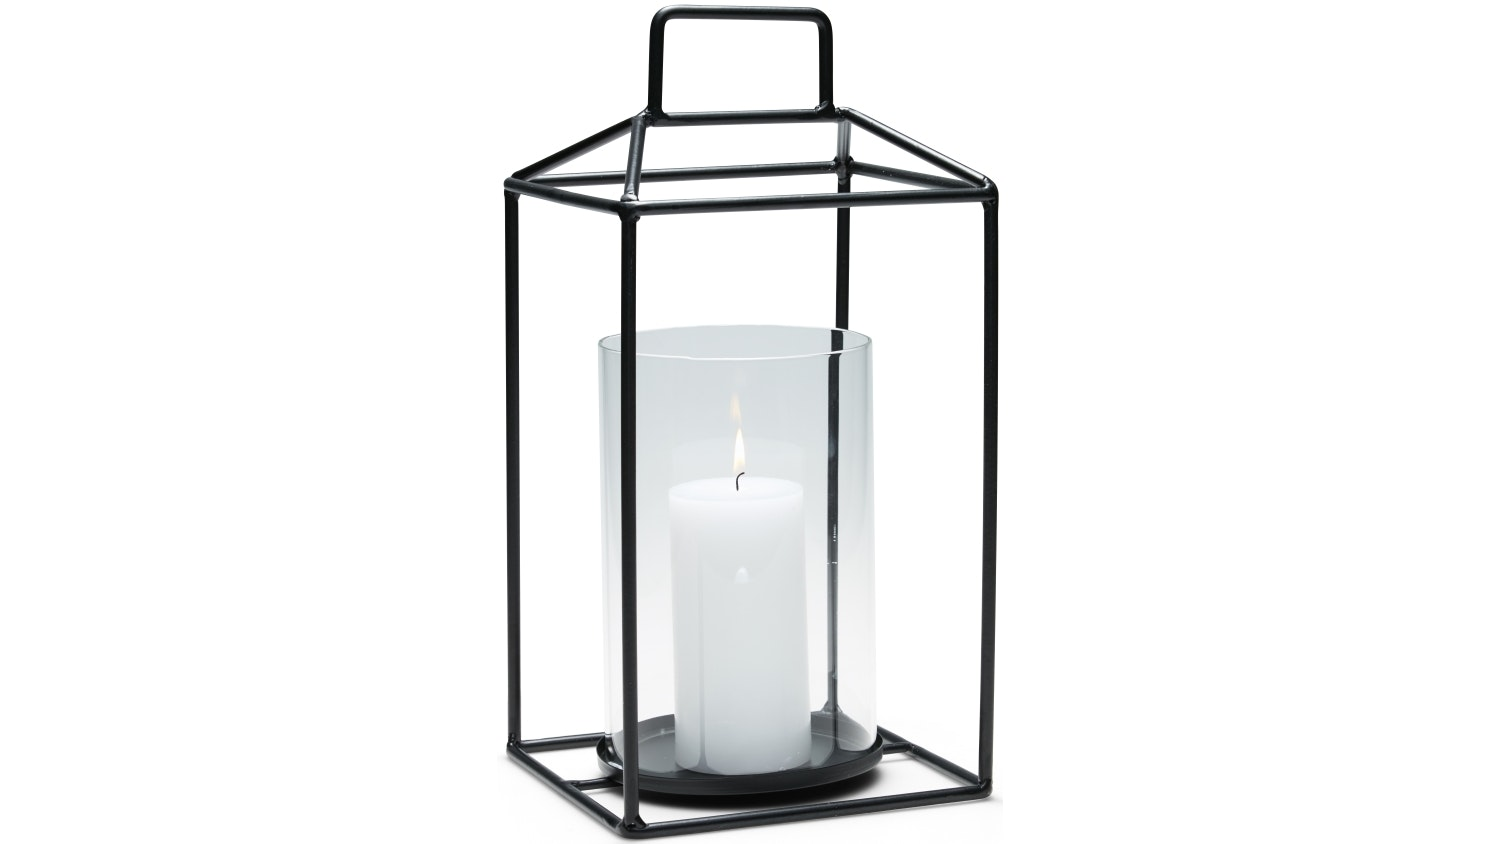 Salt & Pepper Alfresco Small Hurricane Candle Holder